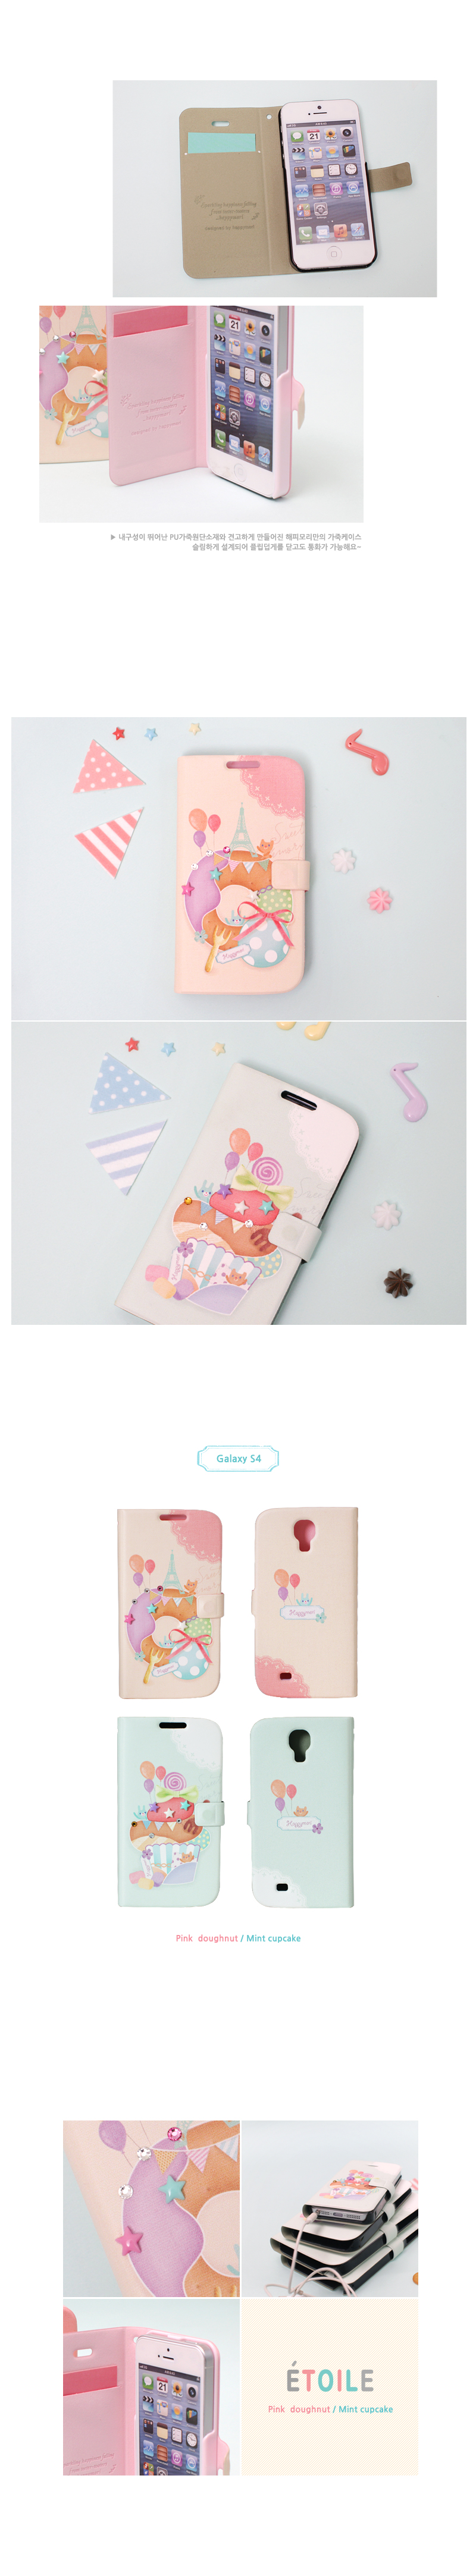 [HAPPYMORI] Flip Cover Case _ etoile (iPhone6Plus,iPhone6Plus_s,Galaxy S6Edge,Galaxy S6,Galaxy Note4)